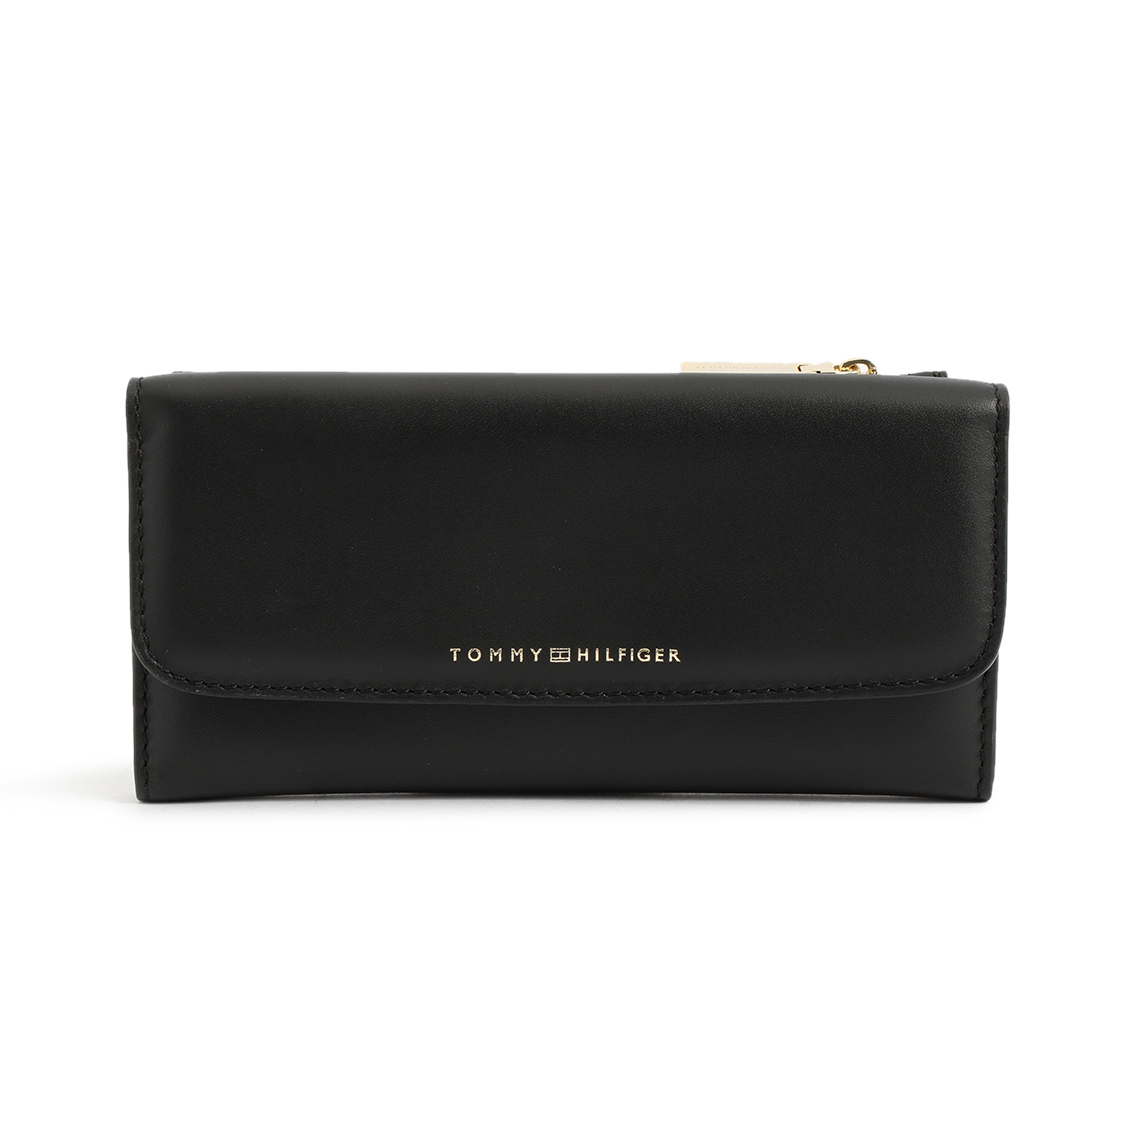 SMOOTH LEATHER SLIM EW WALLET